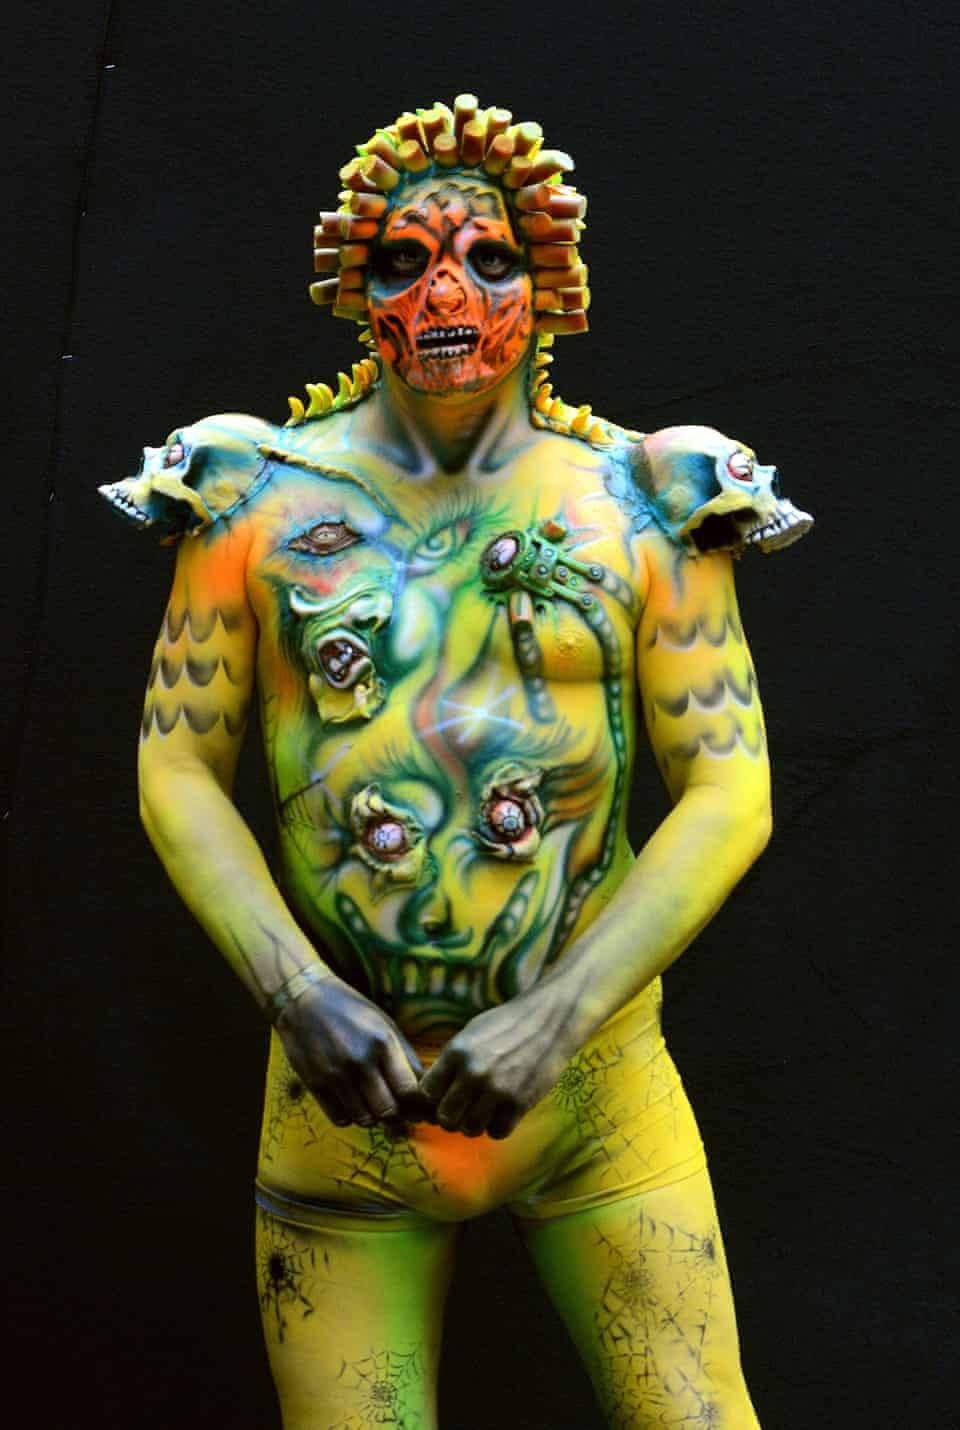 Body Painting Festival In Austria In Pictures In 2020 Body Painting Festival Body Painting Body Art Painting